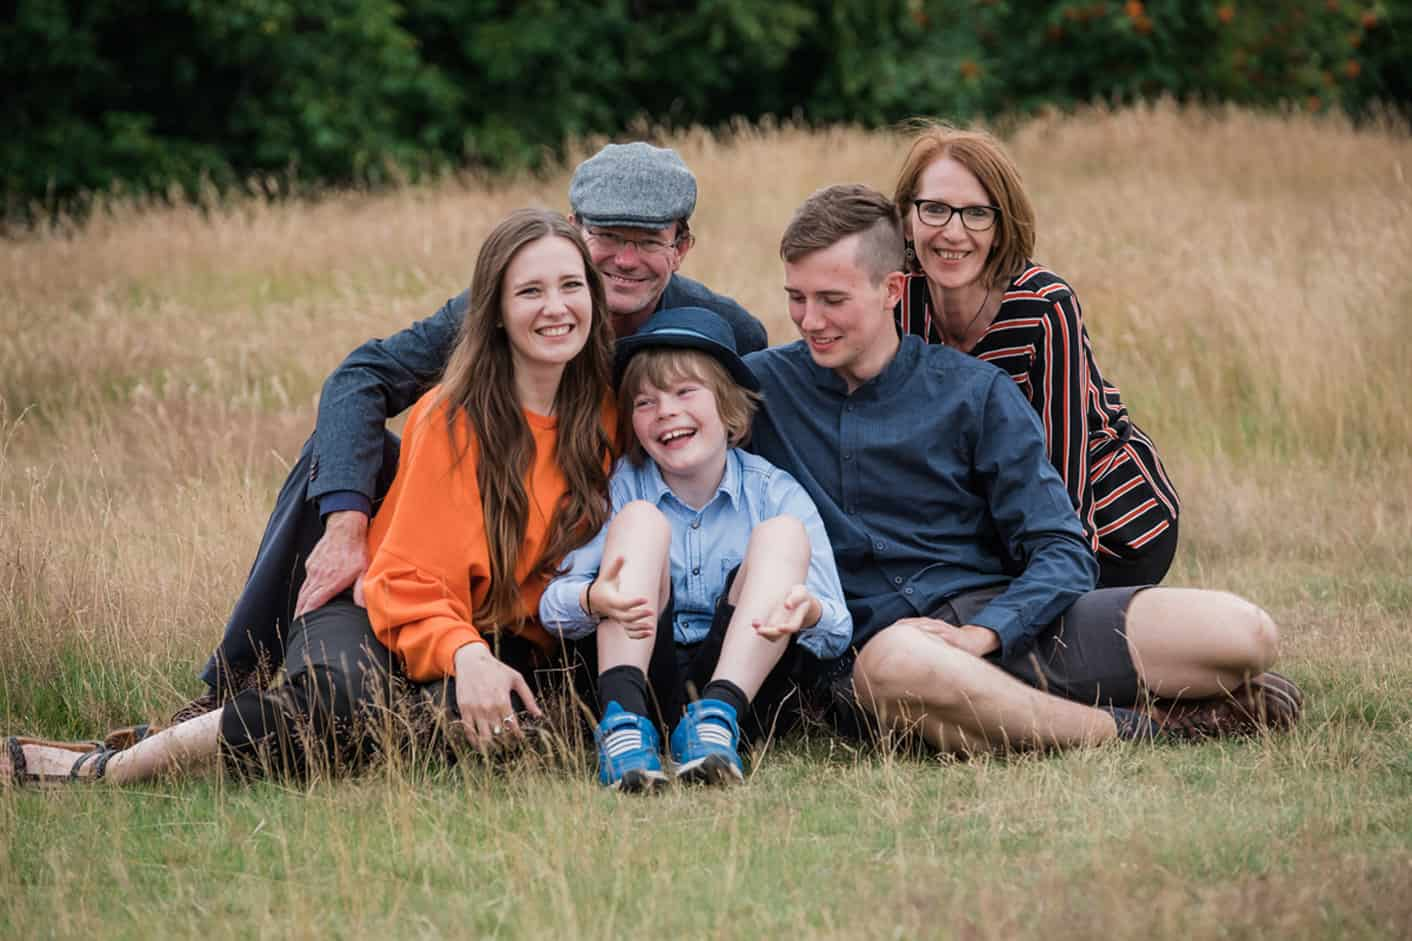 Professional edinburgh family photographer offering services